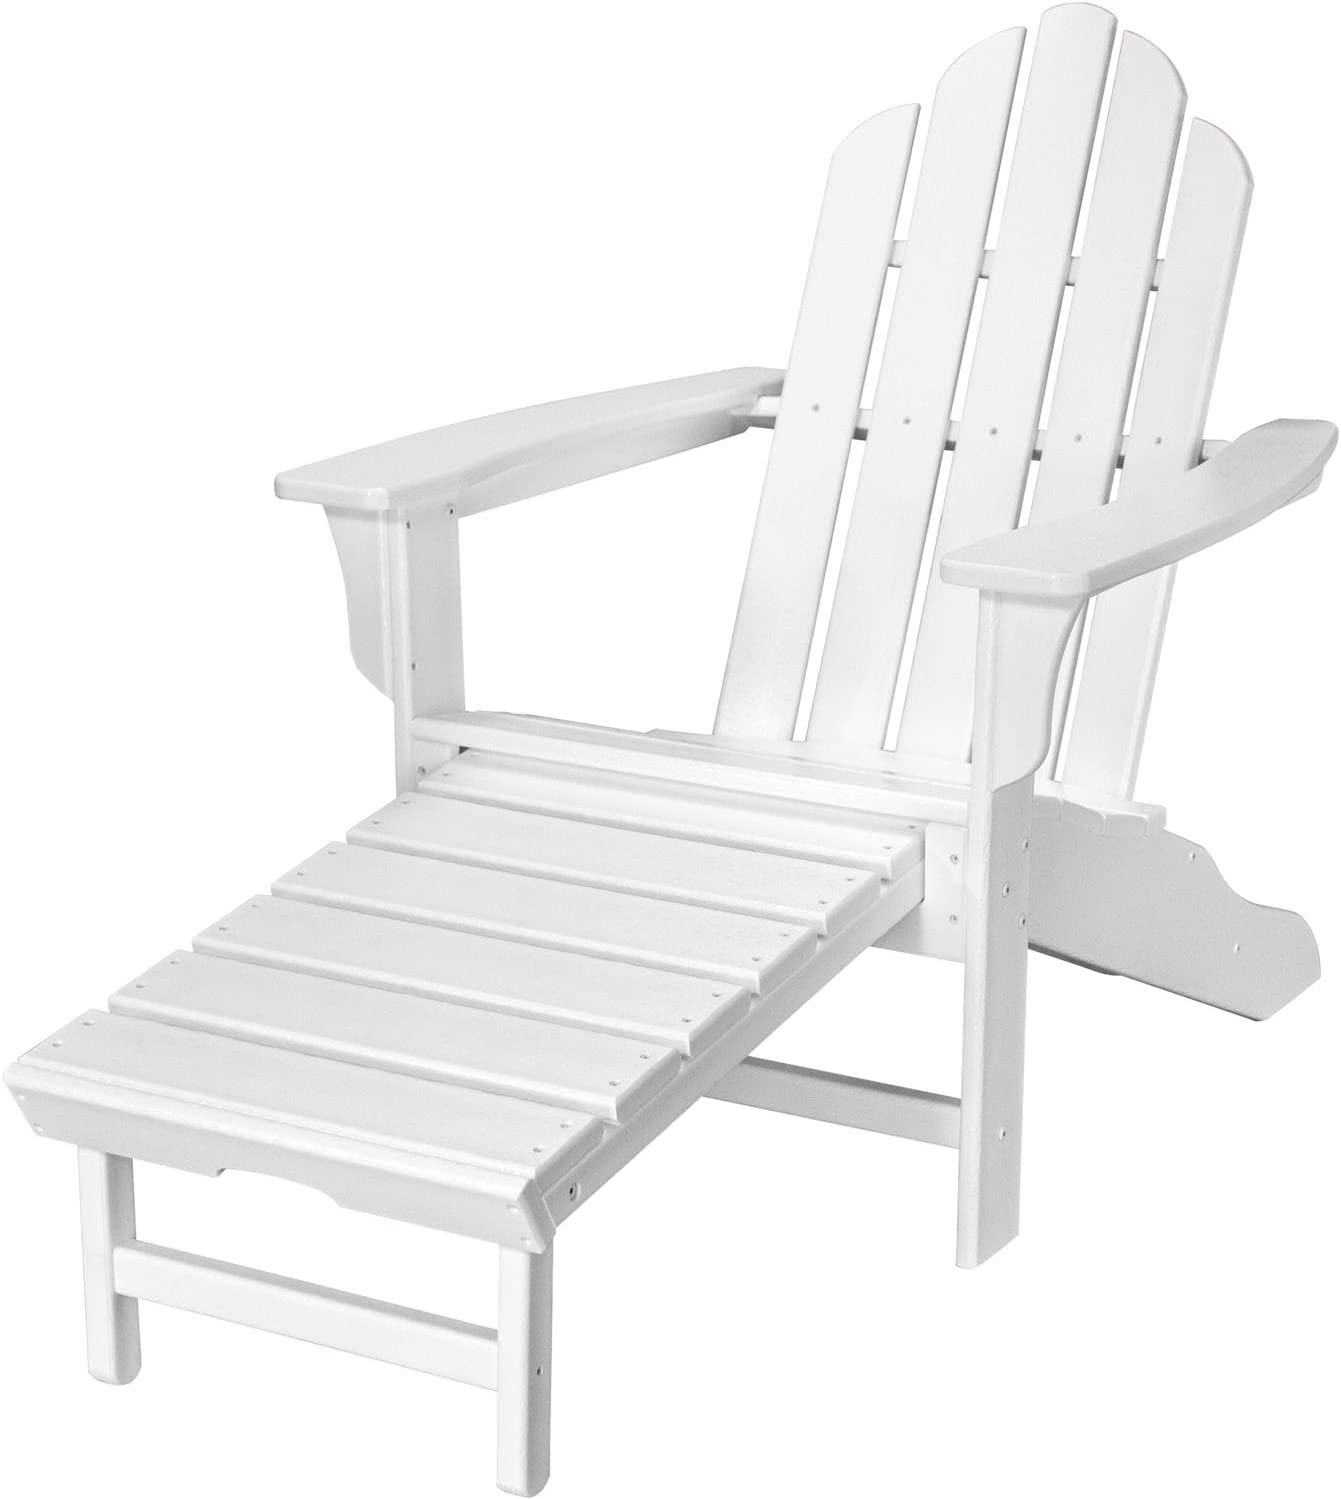 Hanover Outdoor Furniture HVLNA15WH All Weather Contoured Adirondack Chair with Hideaway Ottoman, White